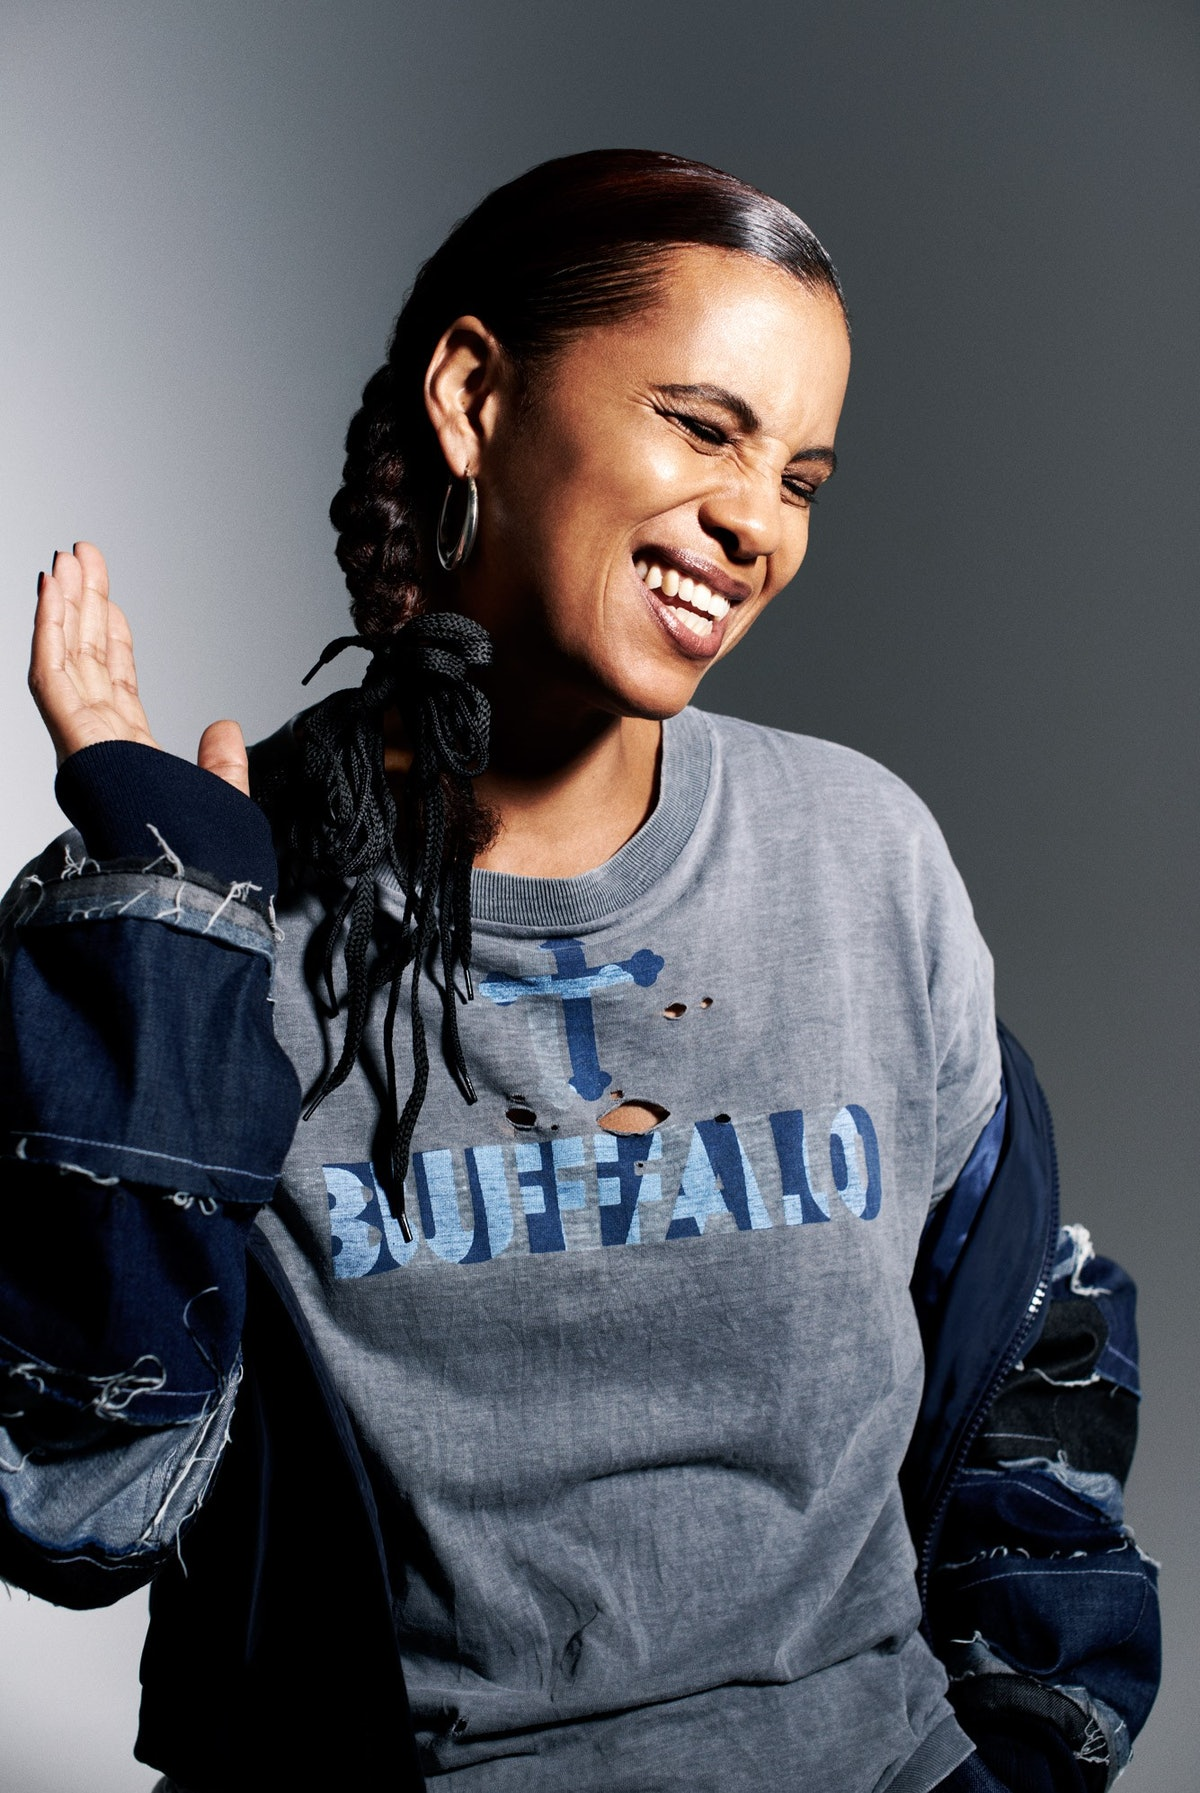 Neneh Cherry, in London, wearing an original Buffalo T-shirt by Ray Petri and a Christopher Shannon jacket.